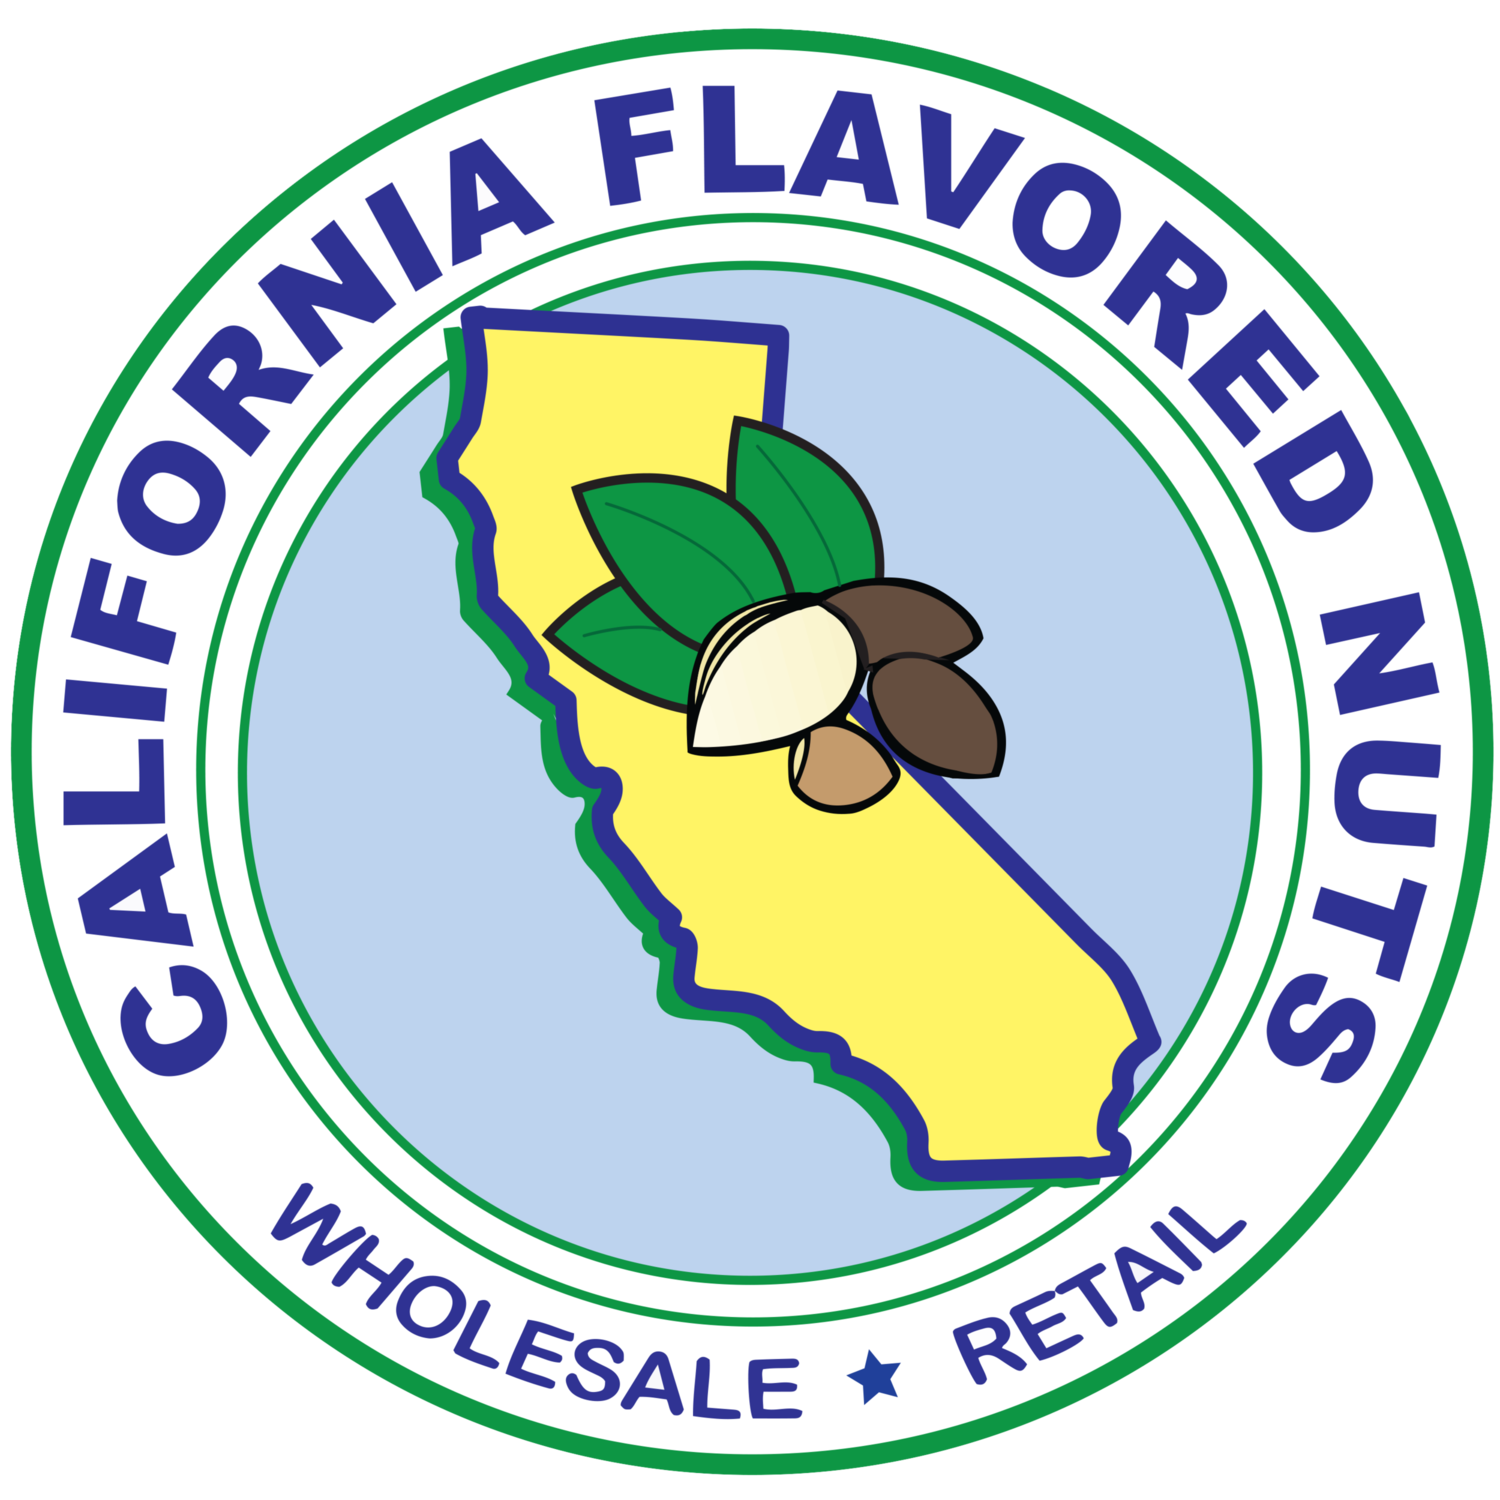 California Flavored Nuts